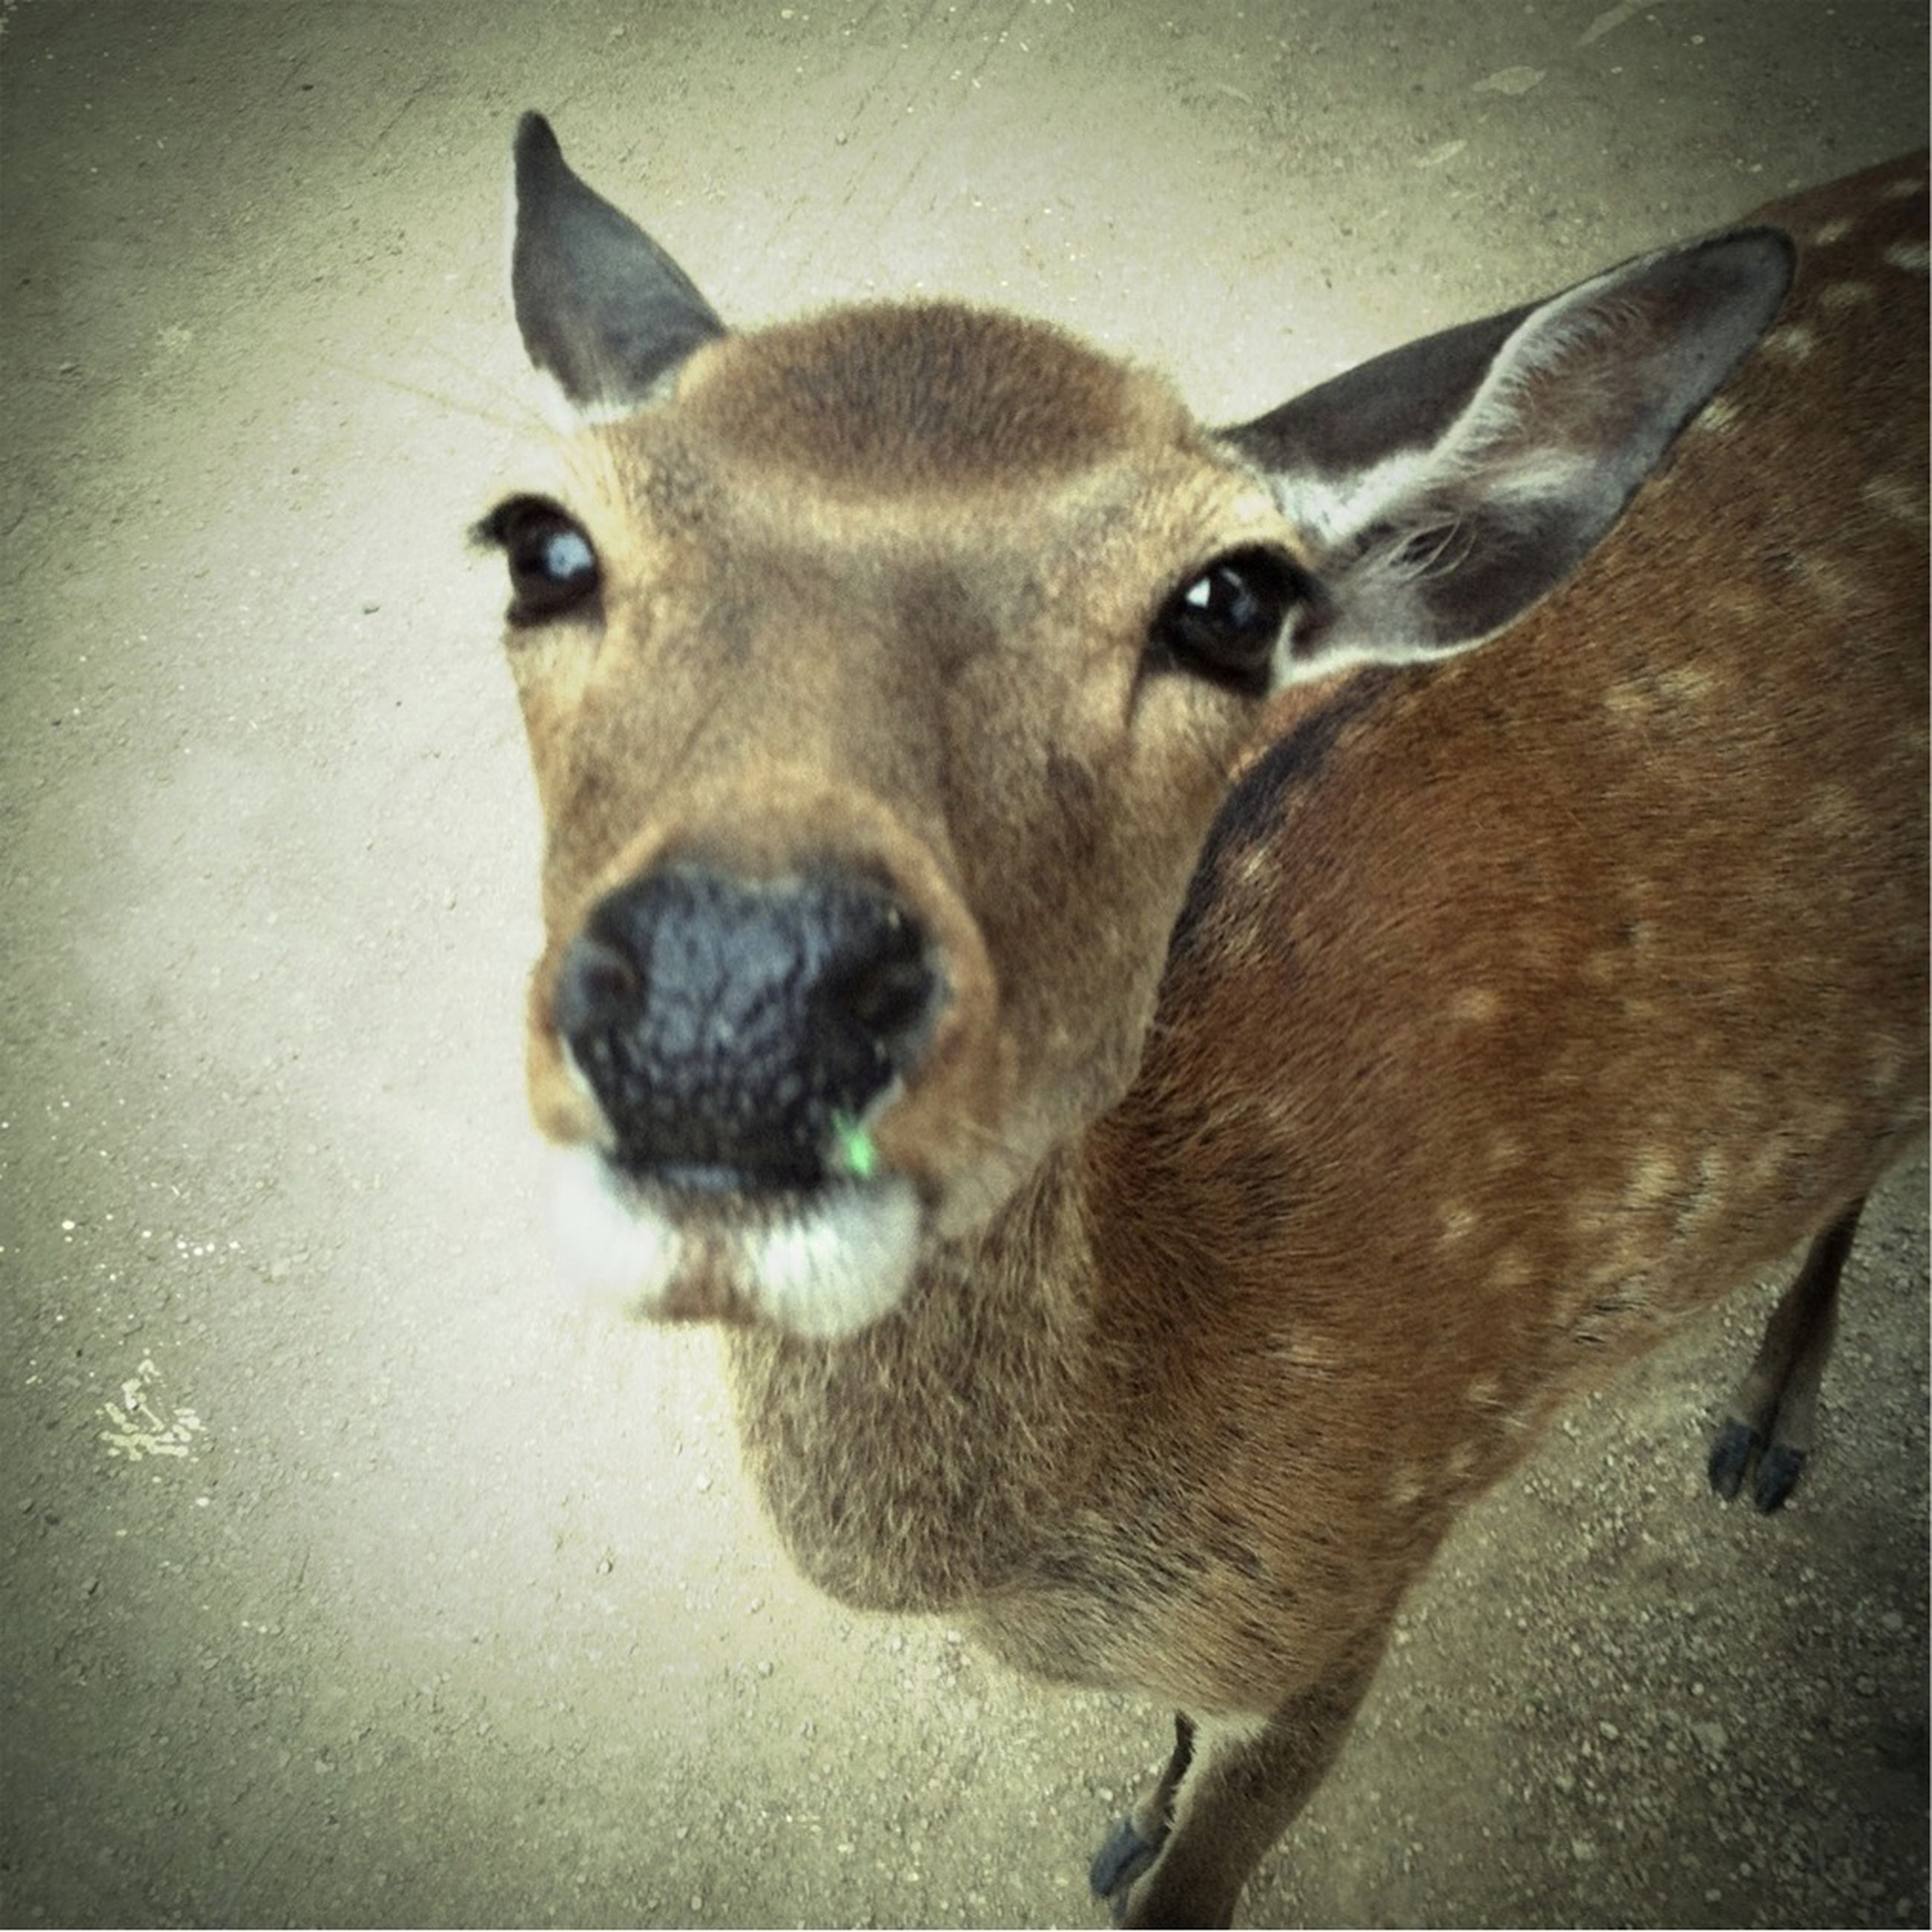 animal themes, one animal, mammal, domestic animals, animal head, portrait, close-up, indoors, looking at camera, wildlife, no people, high angle view, animals in the wild, pets, day, zoology, auto post production filter, full length